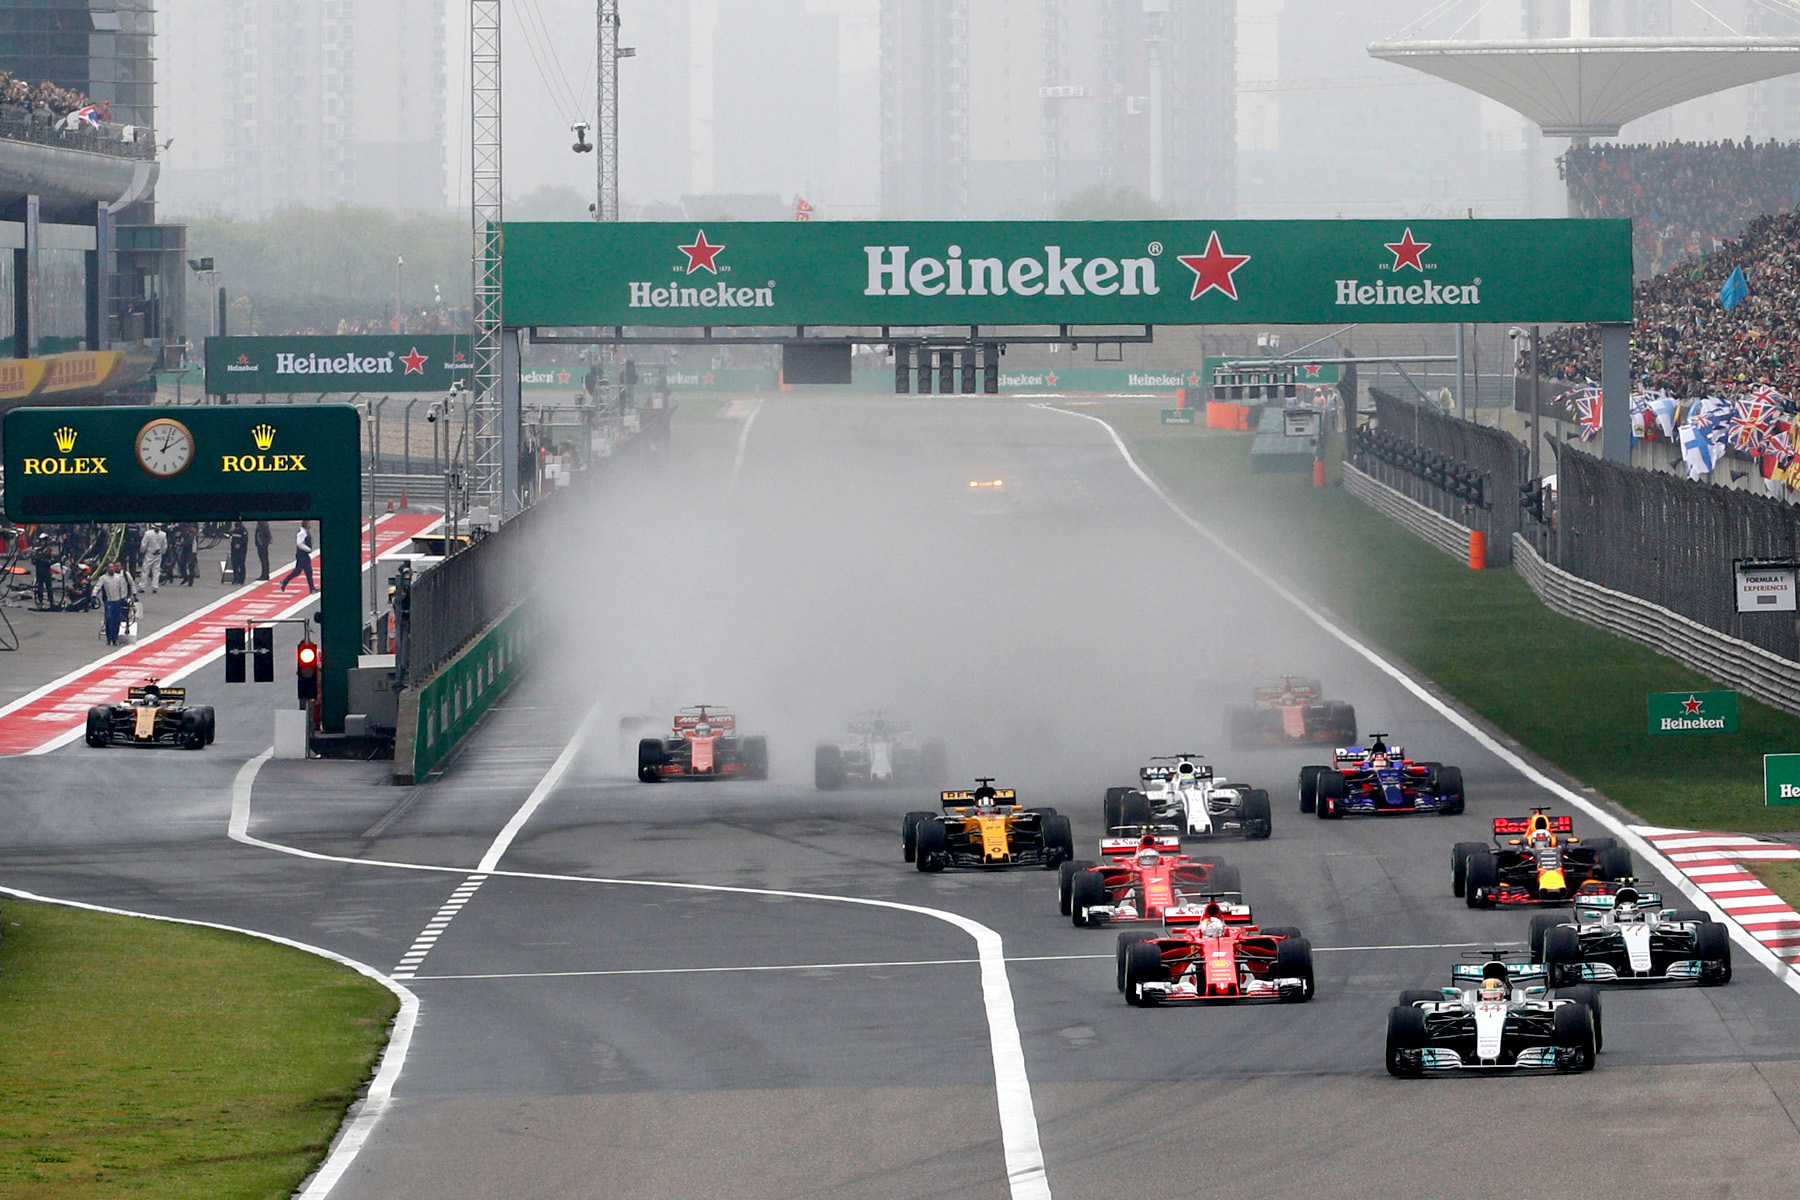 F1 haze cleared at Chinese GP